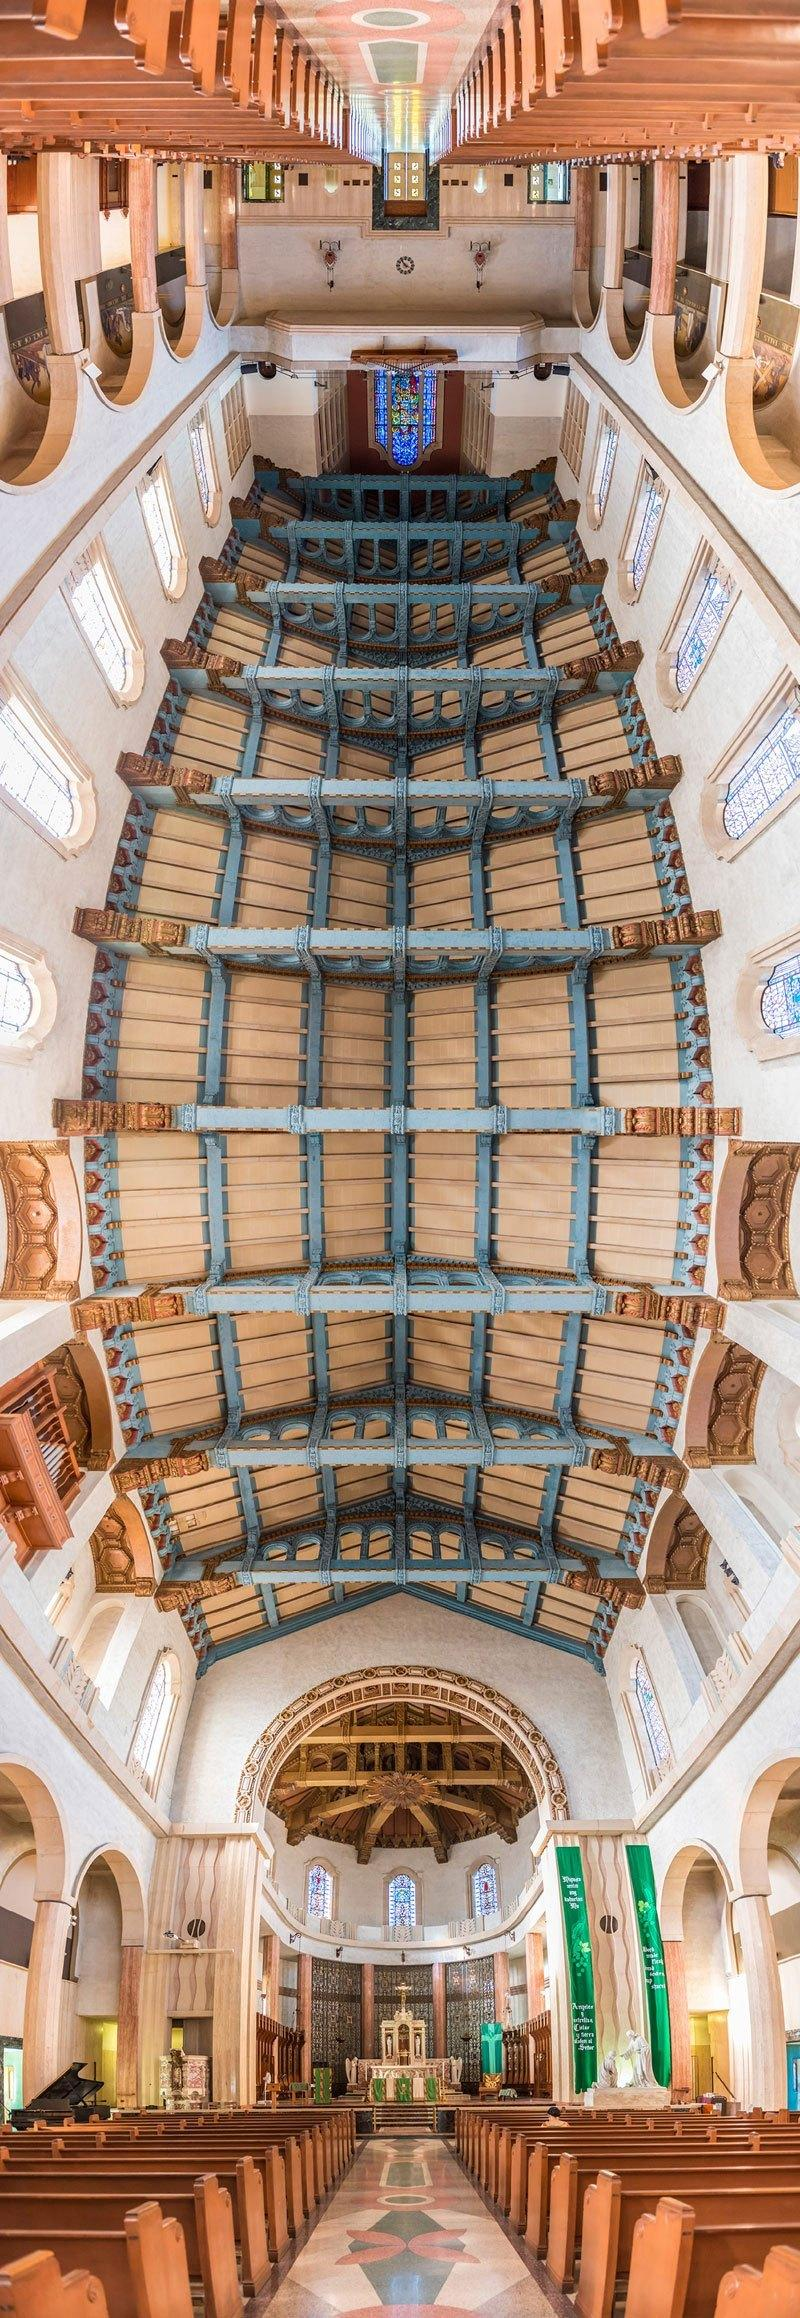 vertical panoramas of church ceilings around the world 5